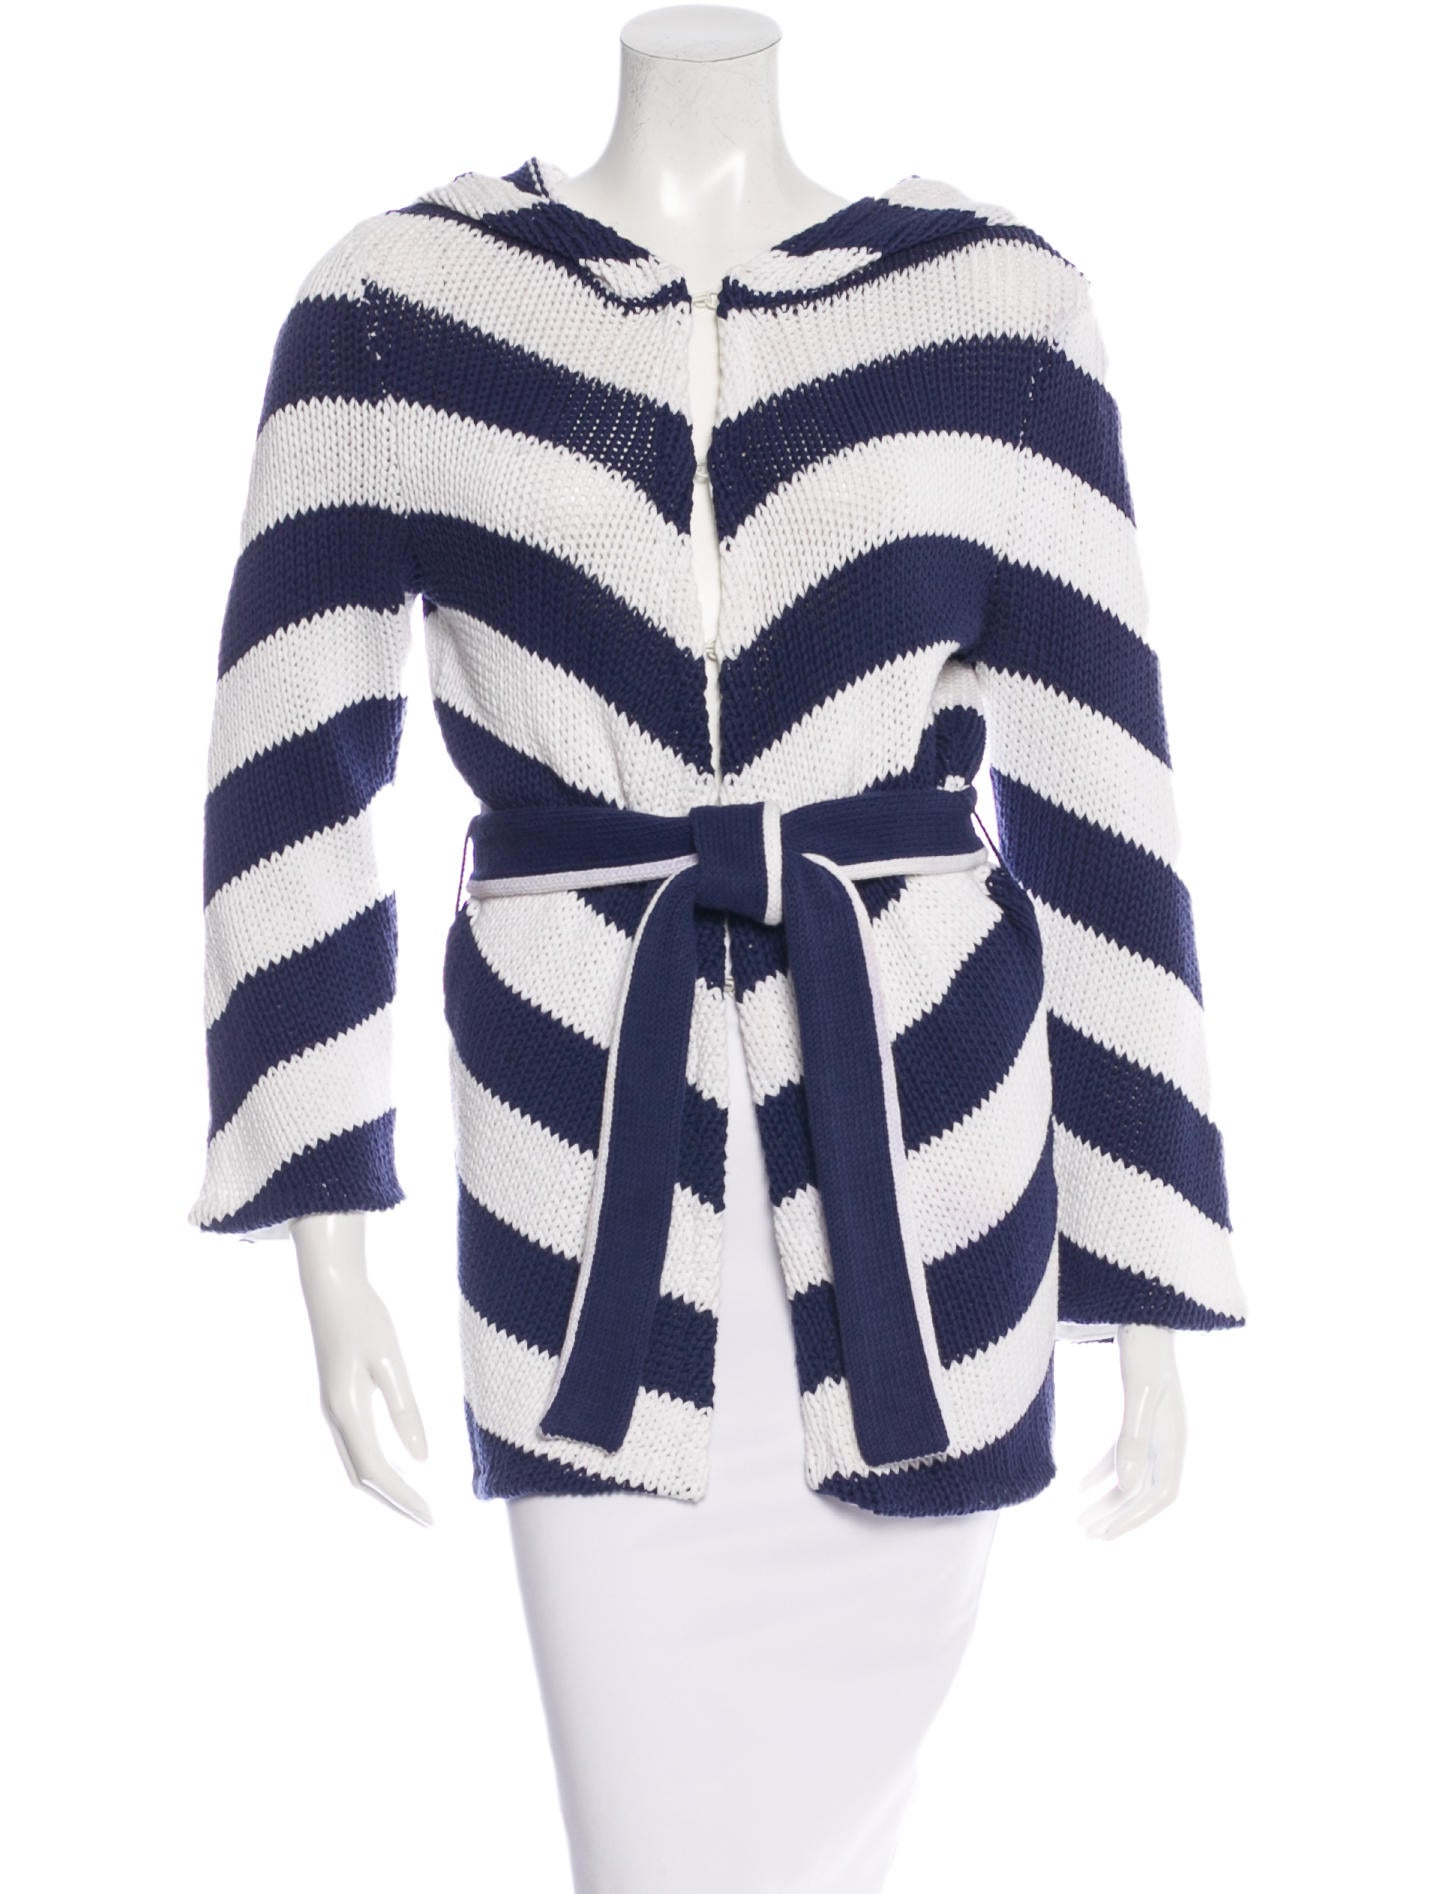 Knitting Pattern Striped Cardigan : Alice + Olivia Striped Knit Cardigan - Clothing - WAO40270 ...